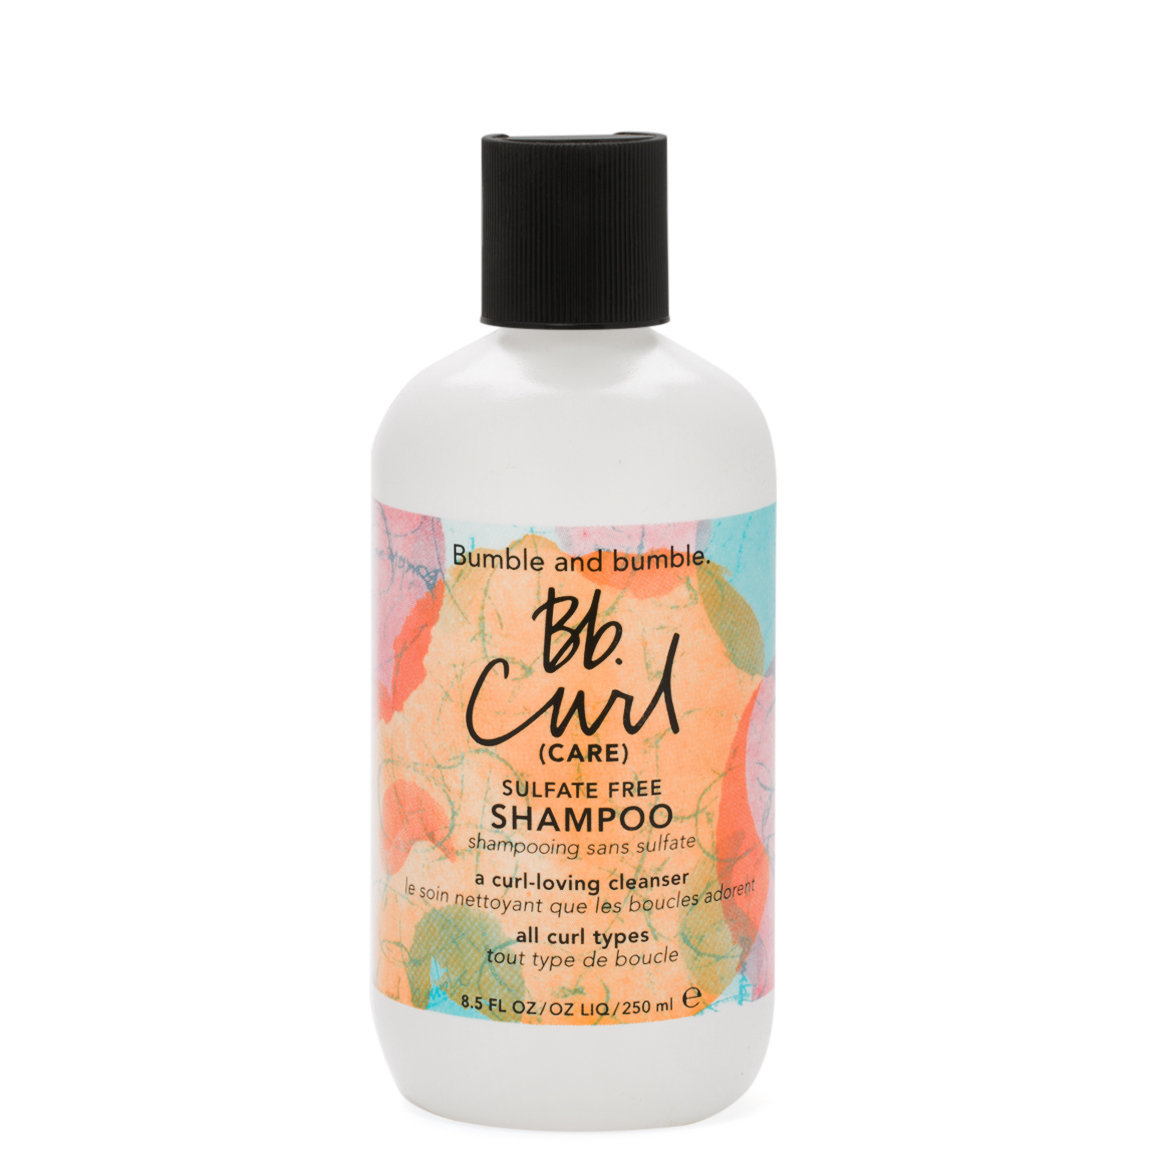 Bumble and bumble. Bb.Curl Sulfate Free Shampoo product smear.